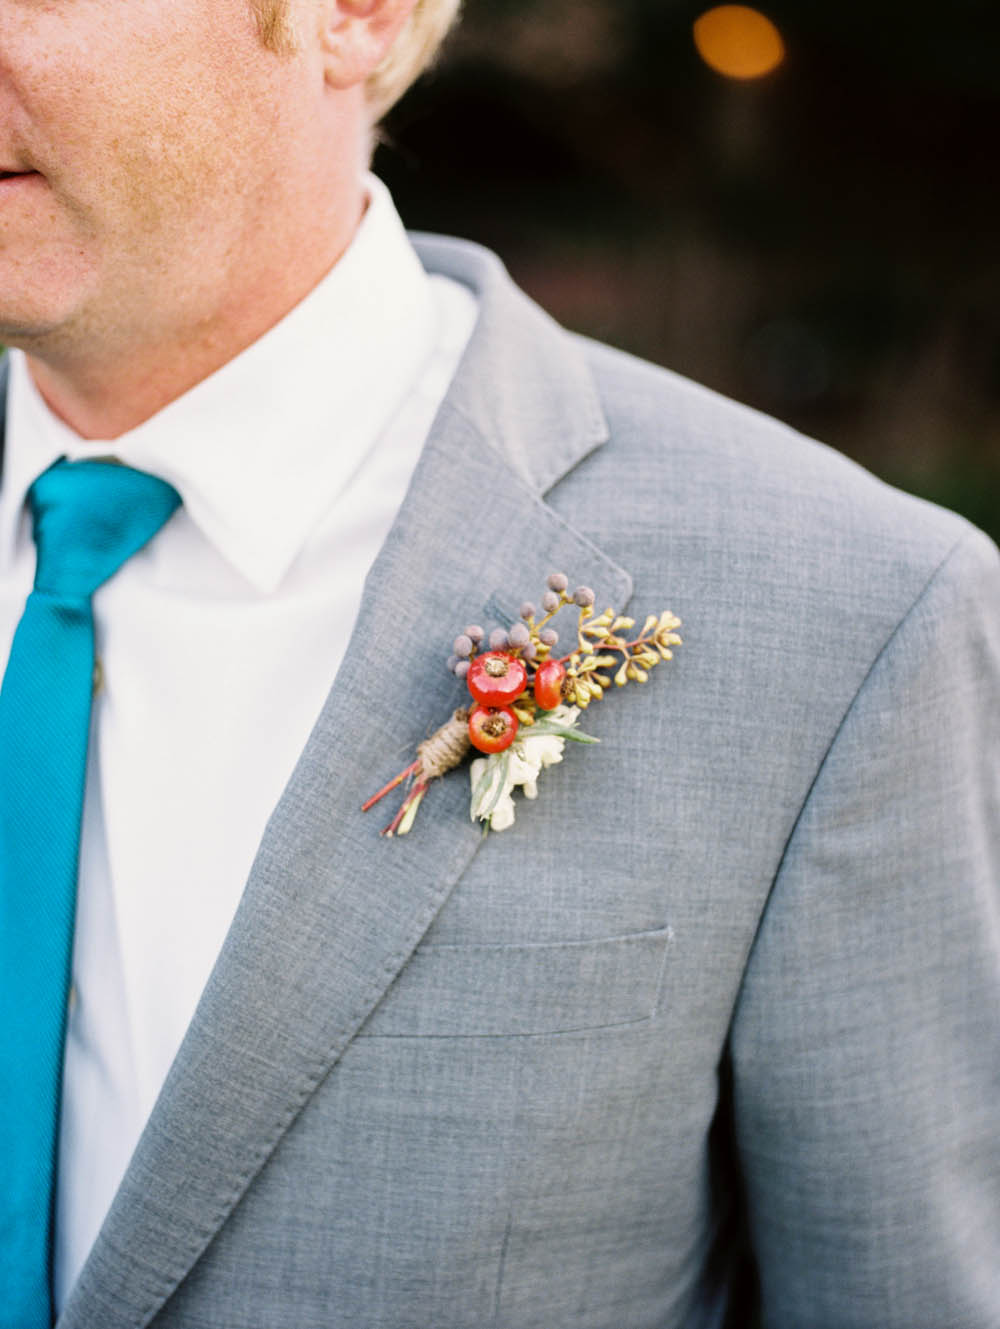 Boutonniere with Rosehips and Berries